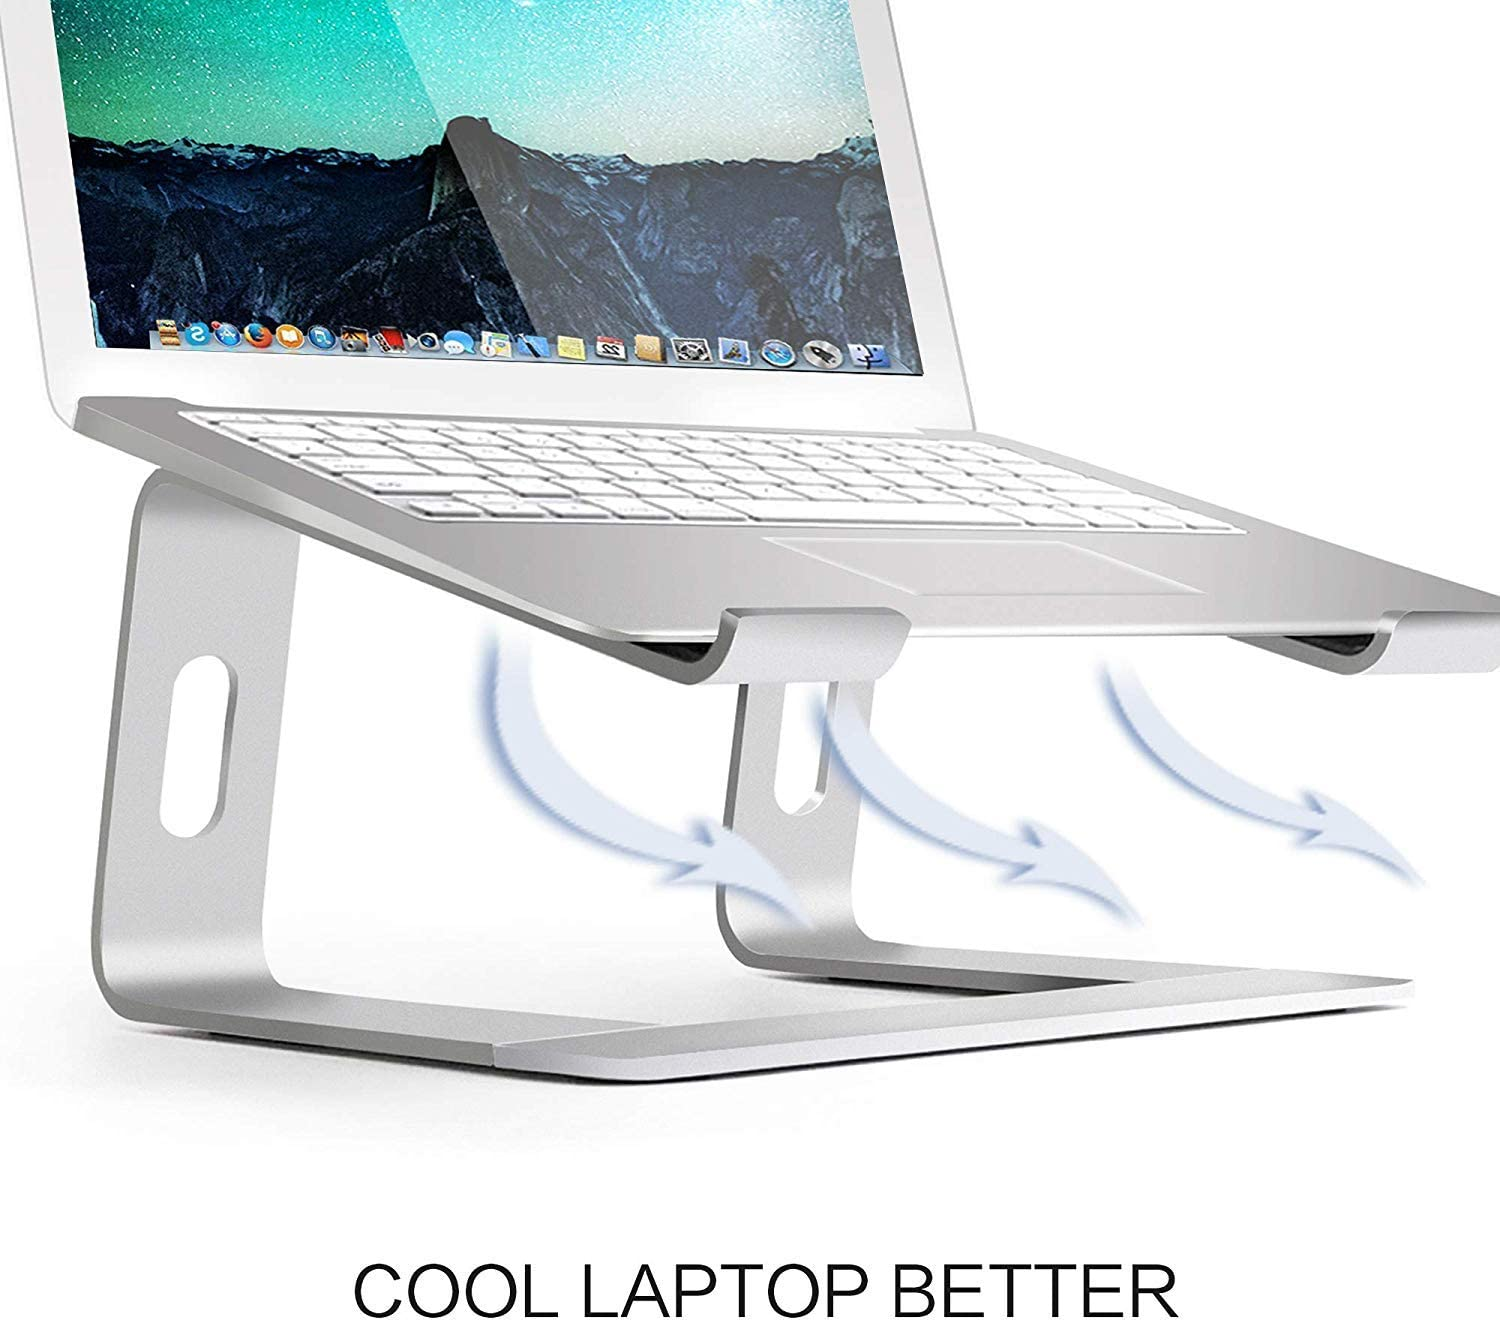 HF-LSH: Aluminum Laptop Stand for Desk Compatible with Mac MacBook Pro Air Apple Notebook, Portable Holder